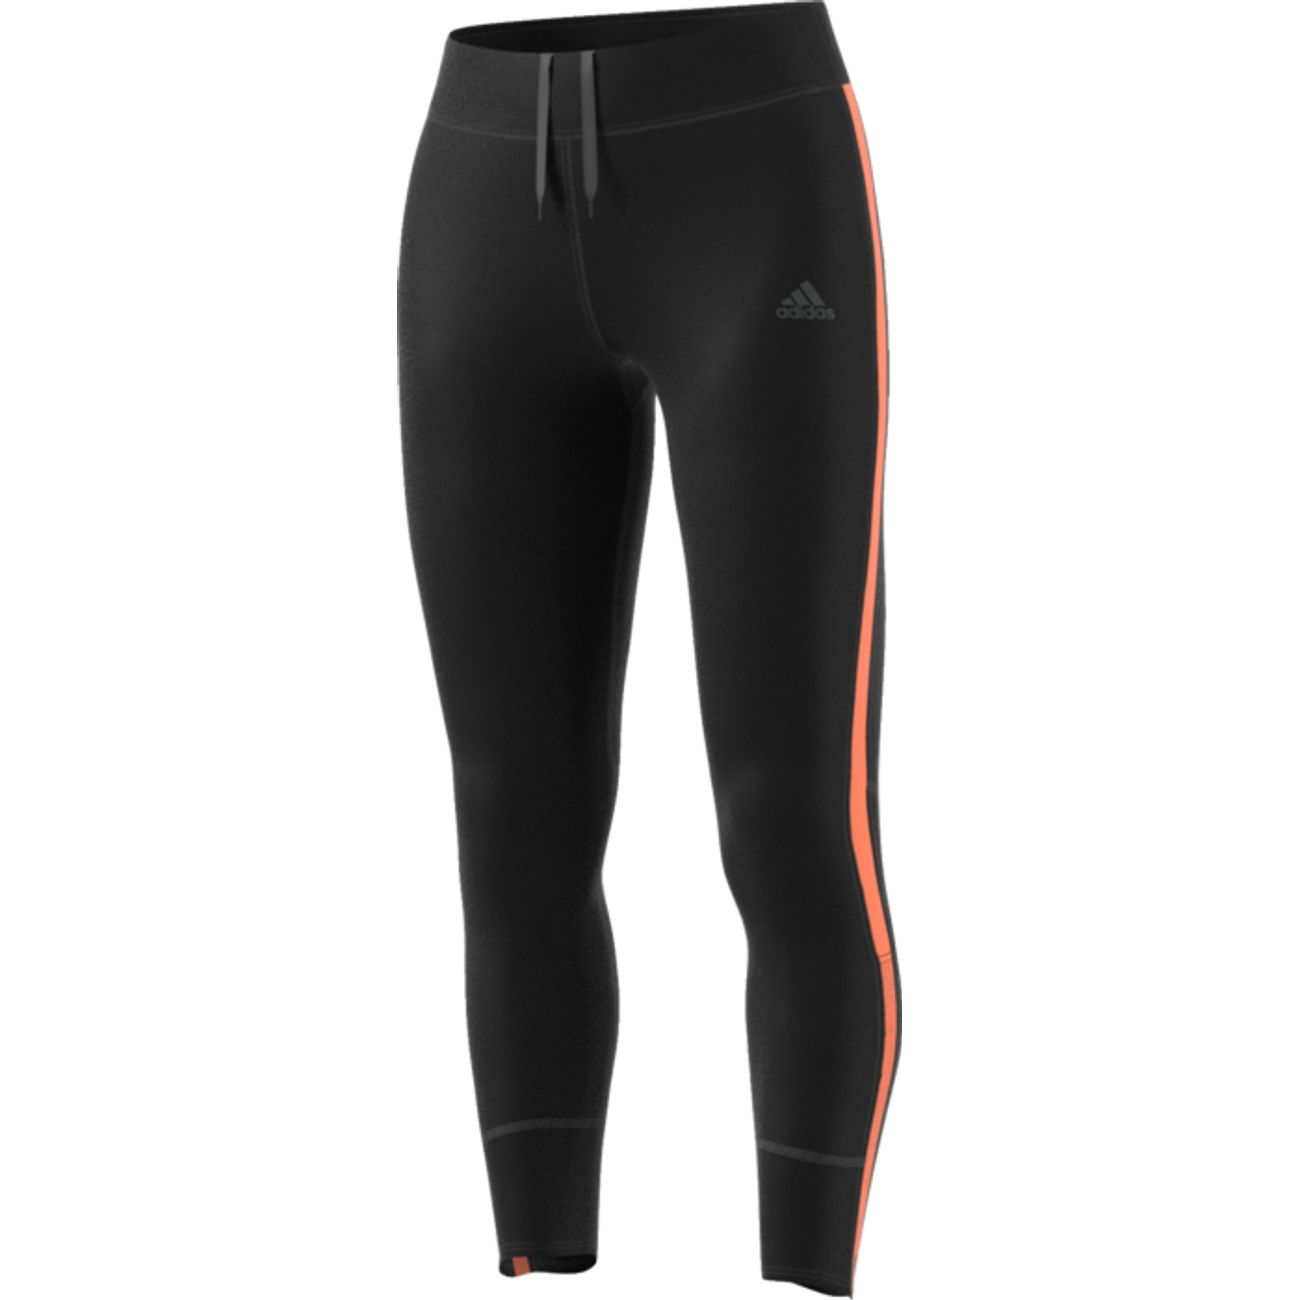 COLLANT running femme ADIDAS RS LNG TIGHT W